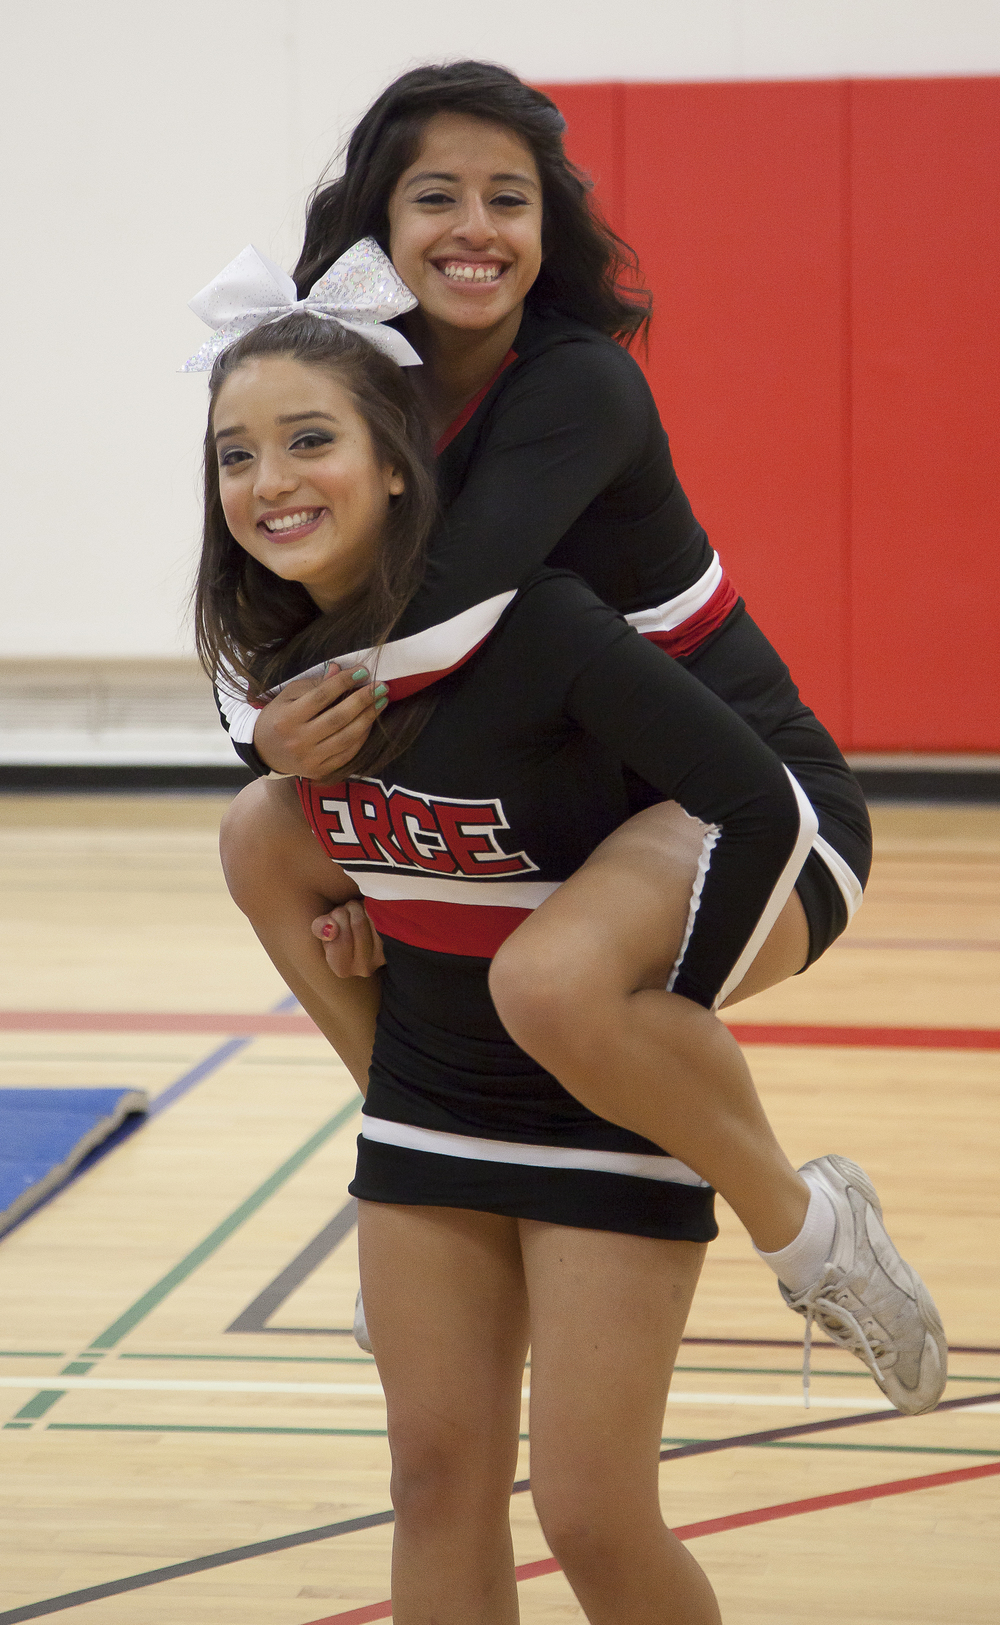 Vivian Herrera carries Dulce Rendon a break period inside the North Gym of Pierce College on Sunday March 1, 2015. Woodland Hills, Calif.  Read the full story here